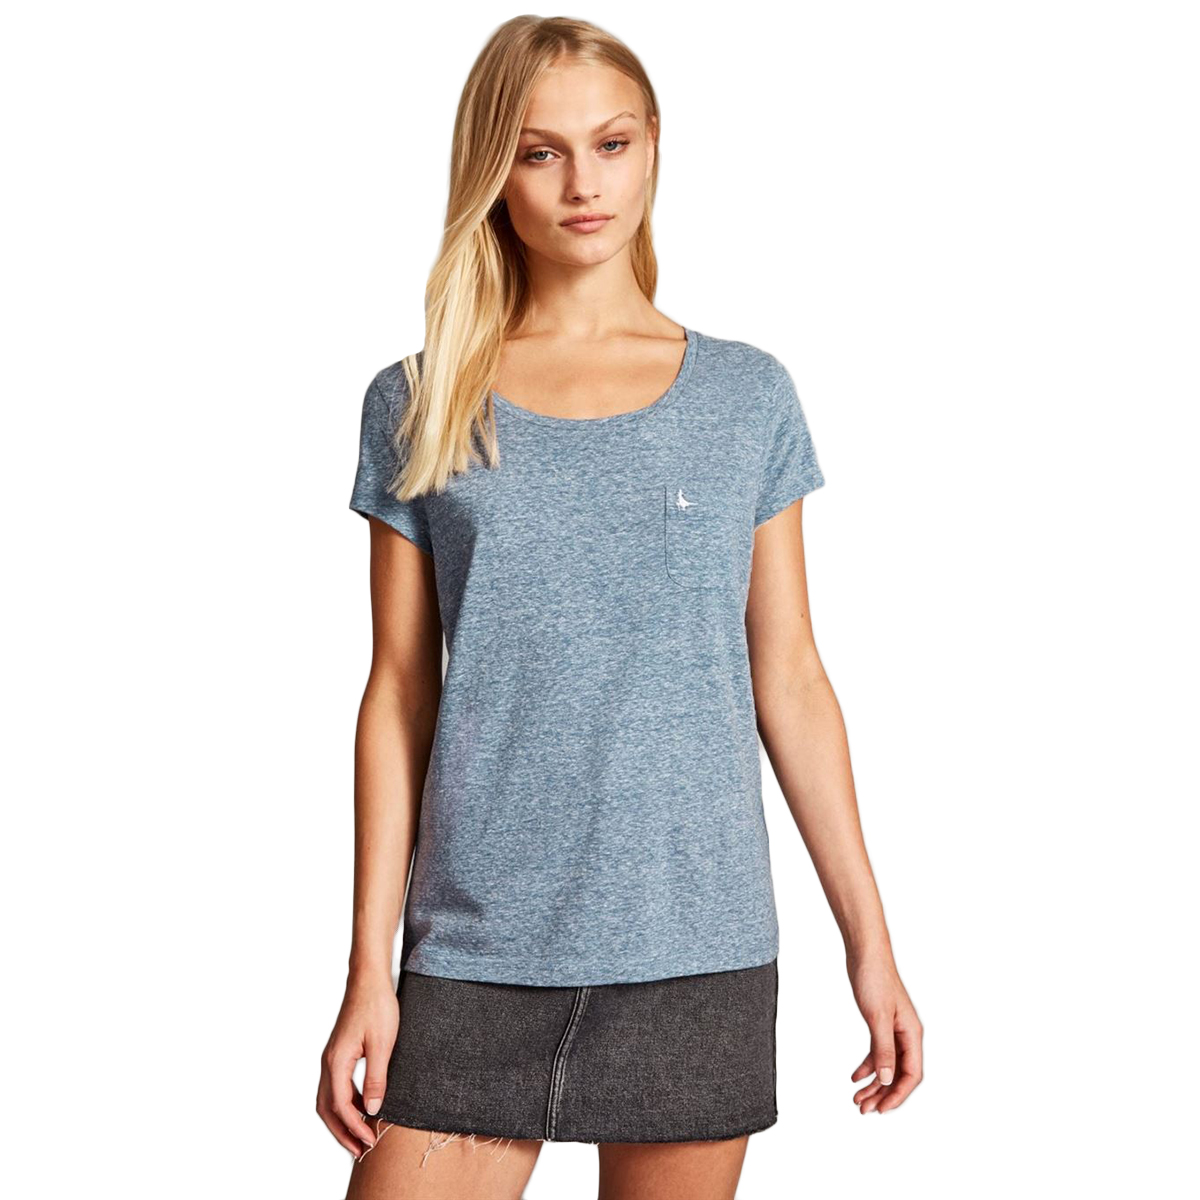 Jack Wills Fullford Classic Short-Sleeve Pocket Tee - Blue, 0